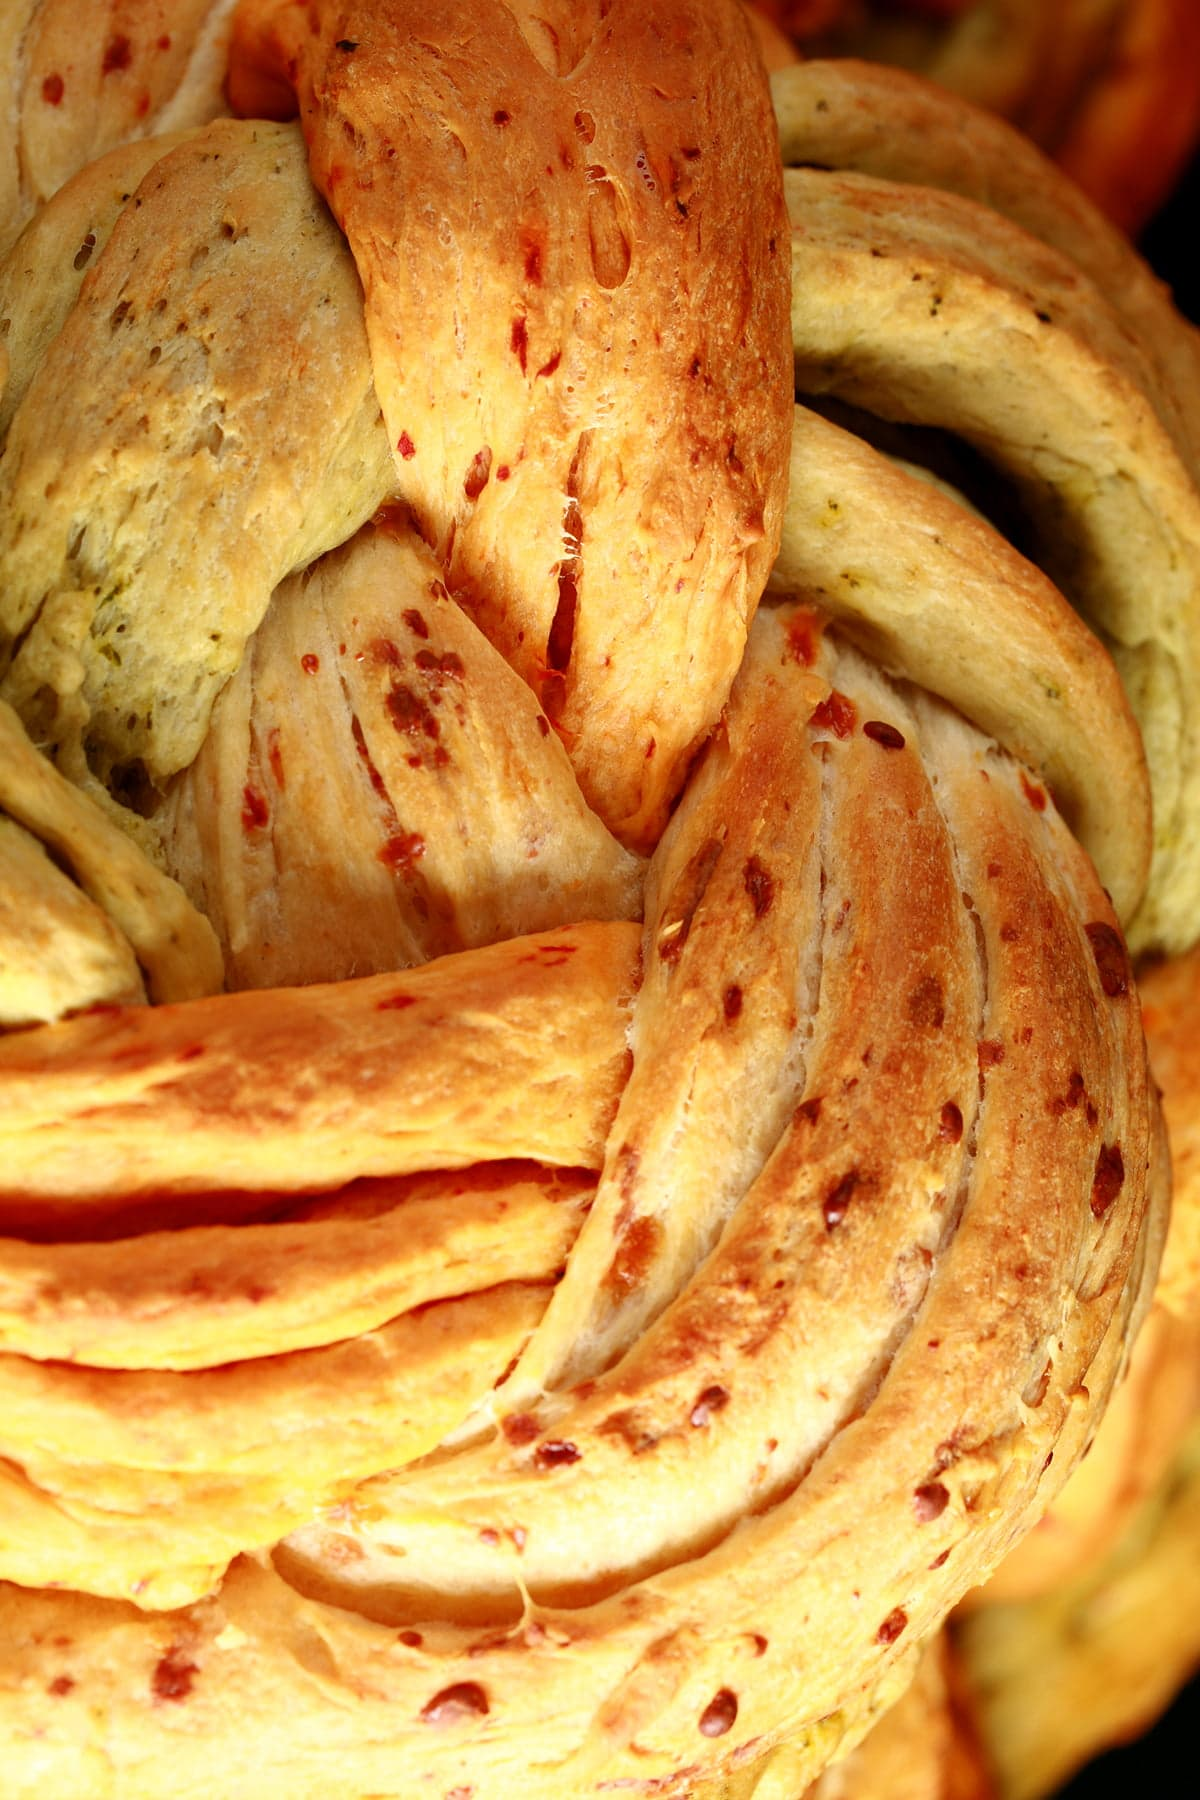 A large round loaf of a tri-colour bread braid. The breads are green/basil, tan/asiago, and red/roasted red pepper.